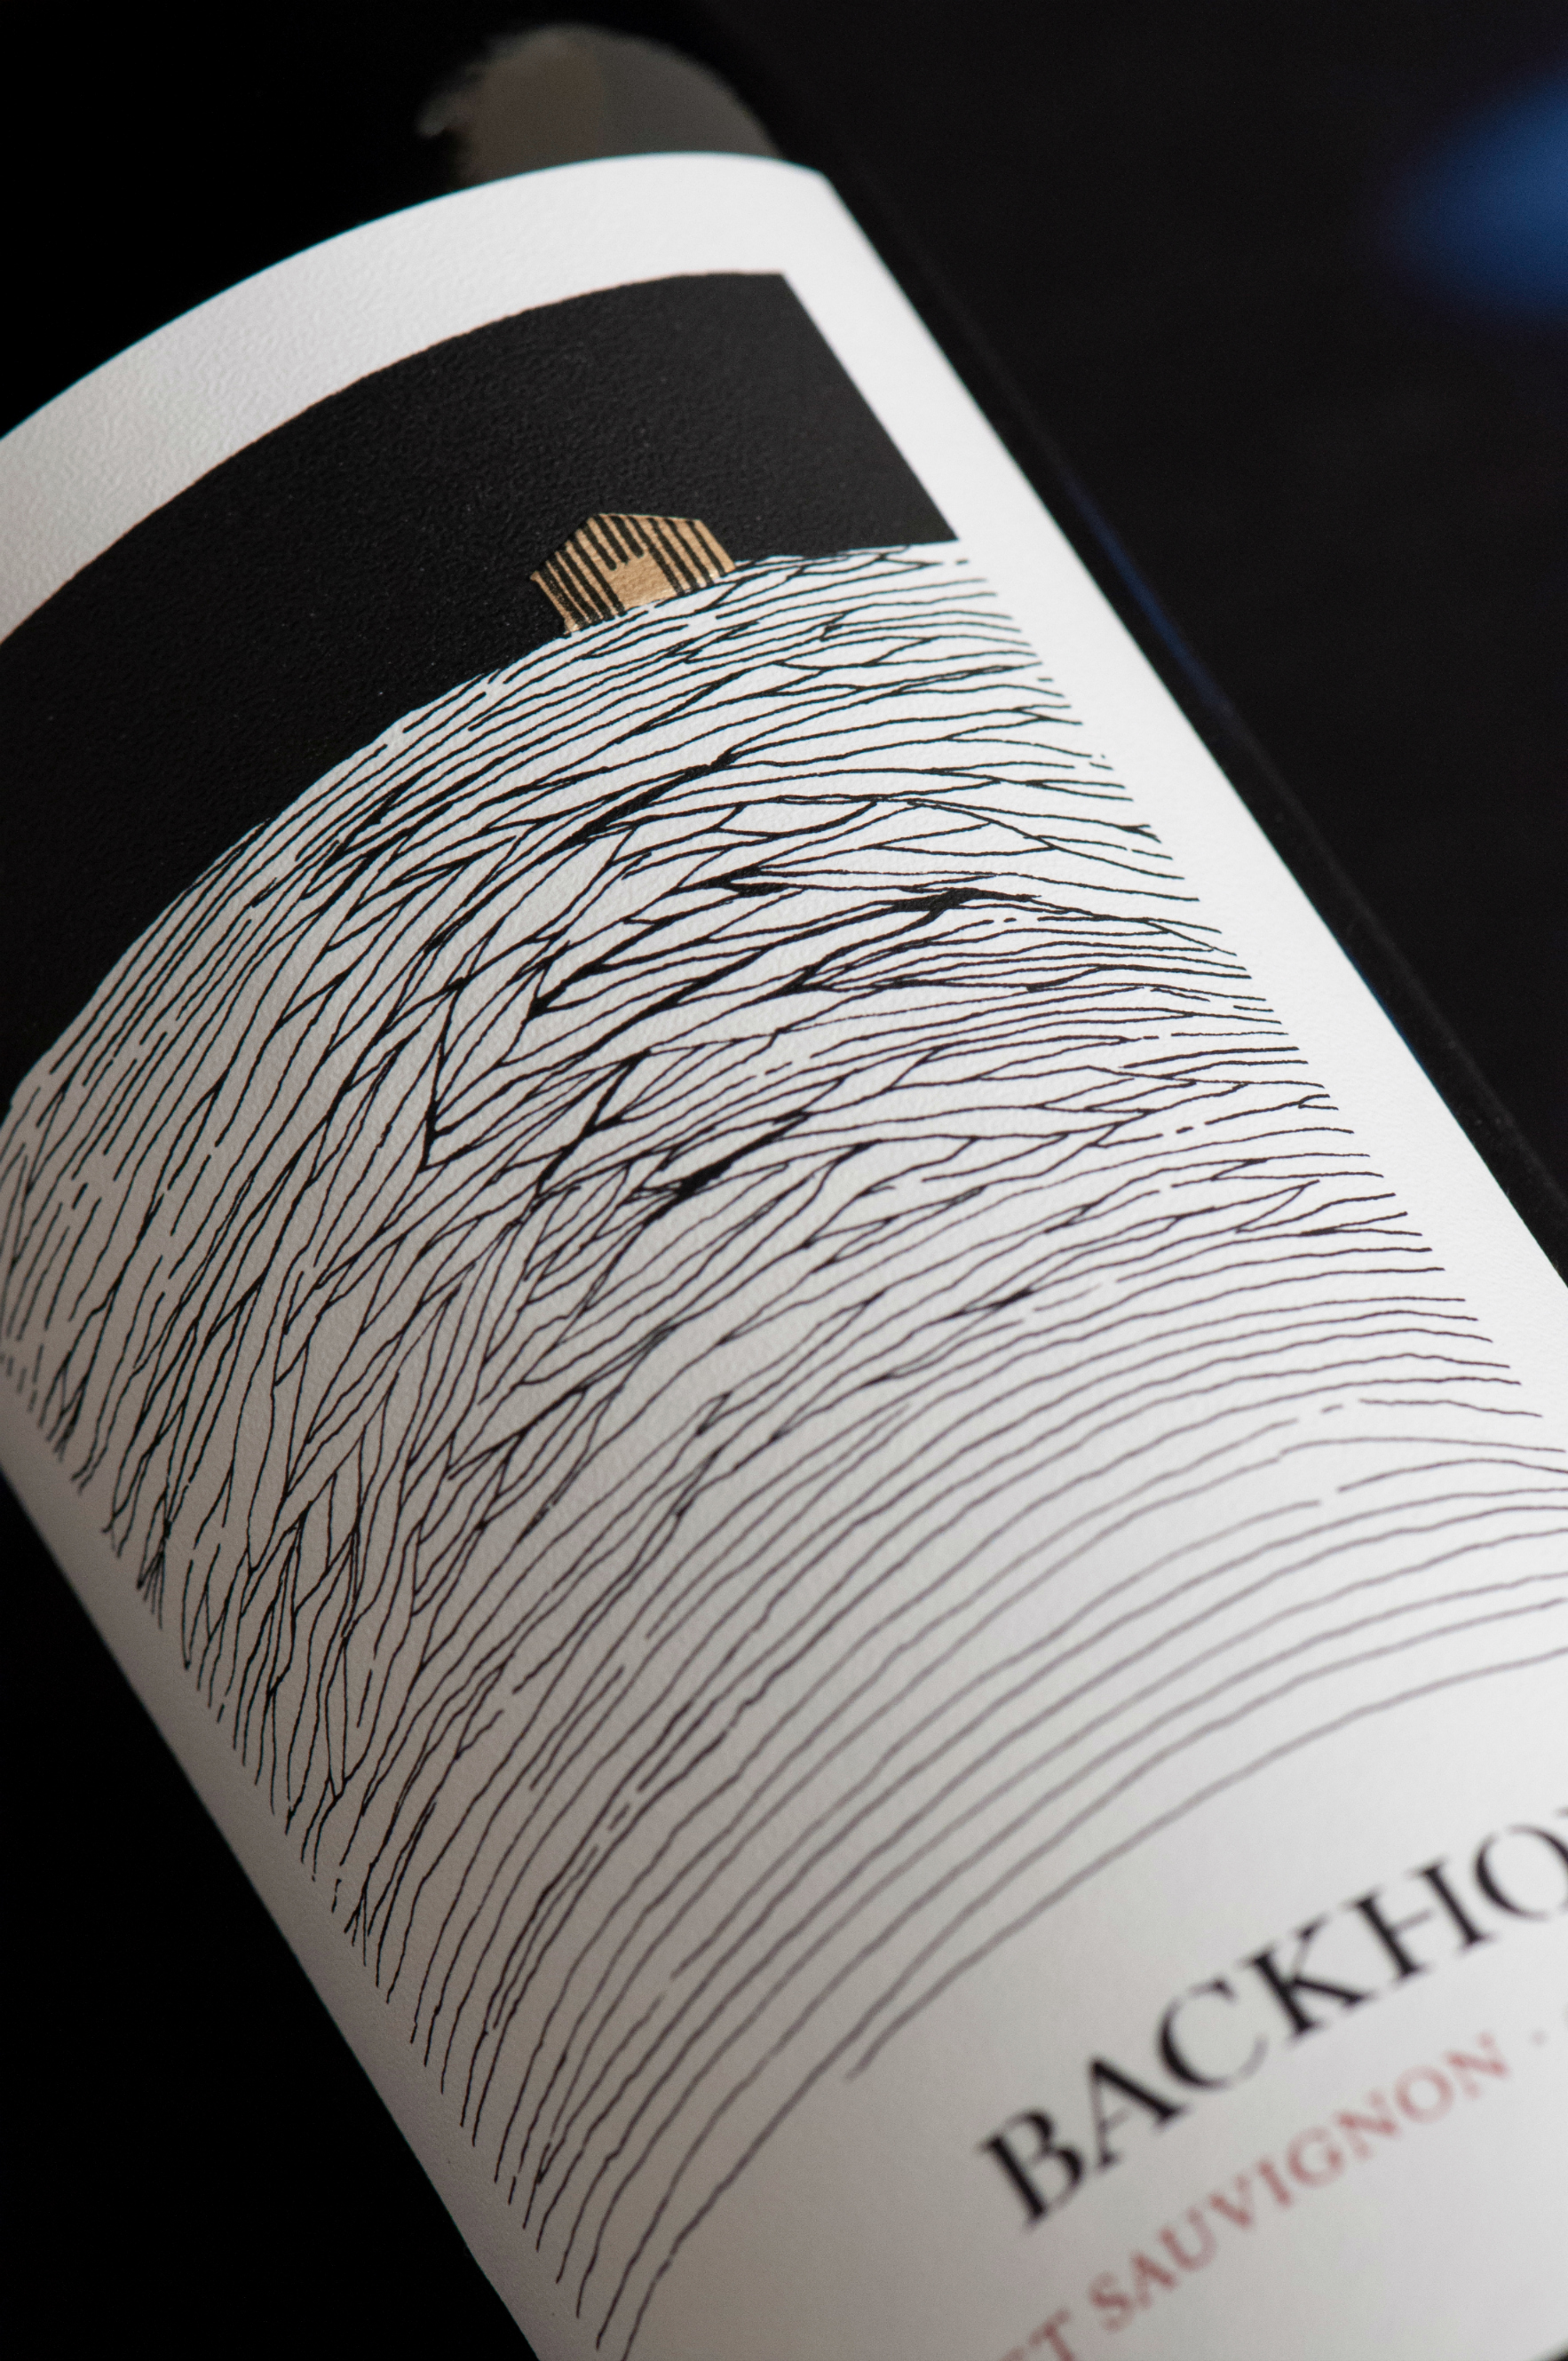 Boutique and Artisanal Wine Brand to be Sold Exclusively On-Premise / World Brand & Packaging Design Society